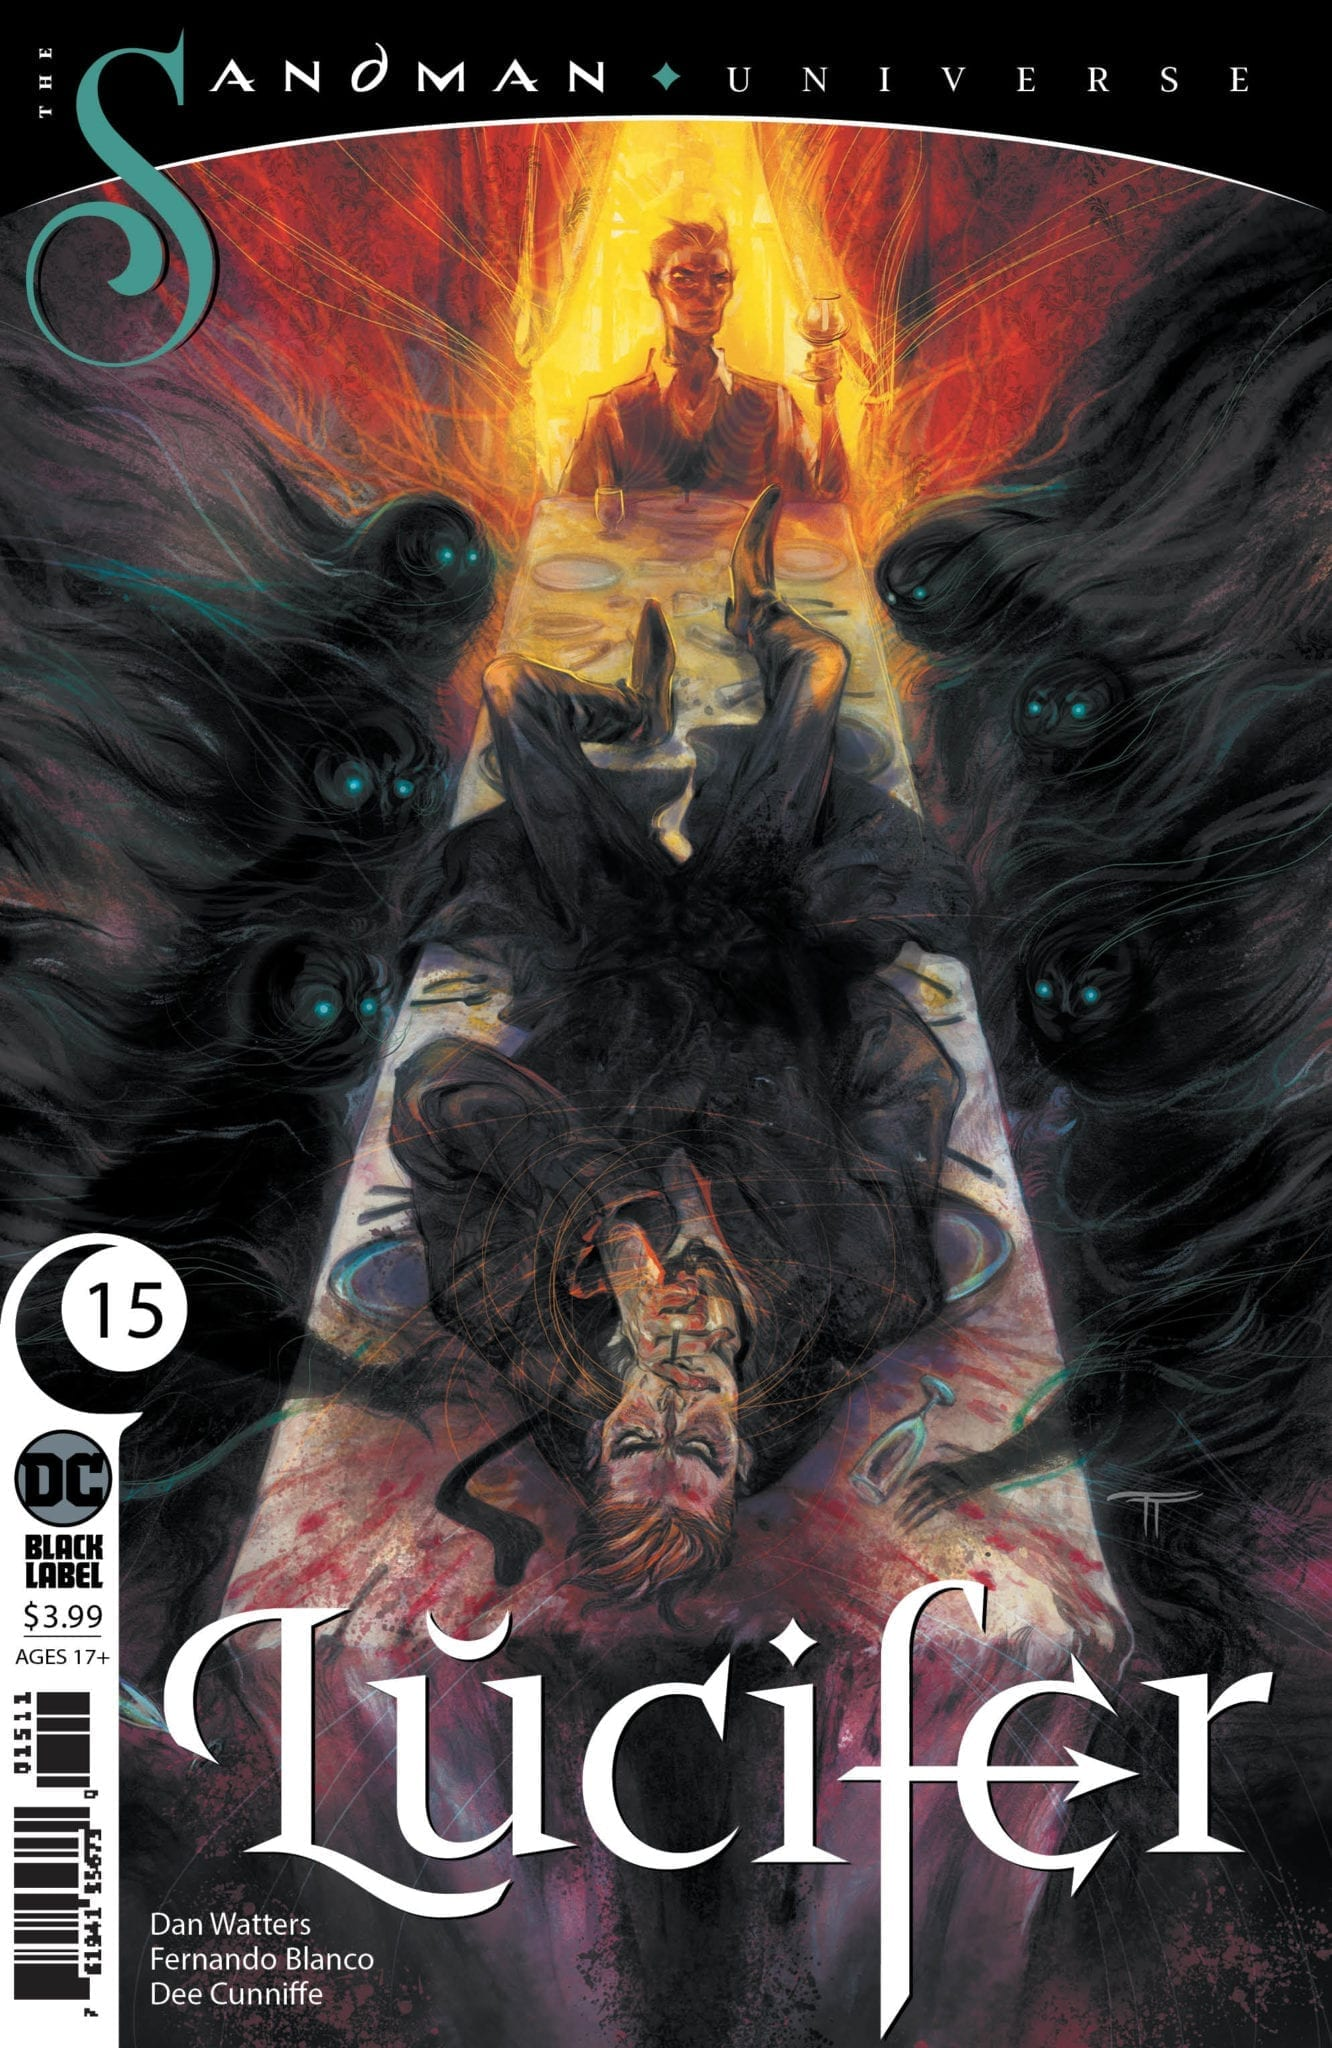 dc comics sandman universe exclusive preview lucifer #15